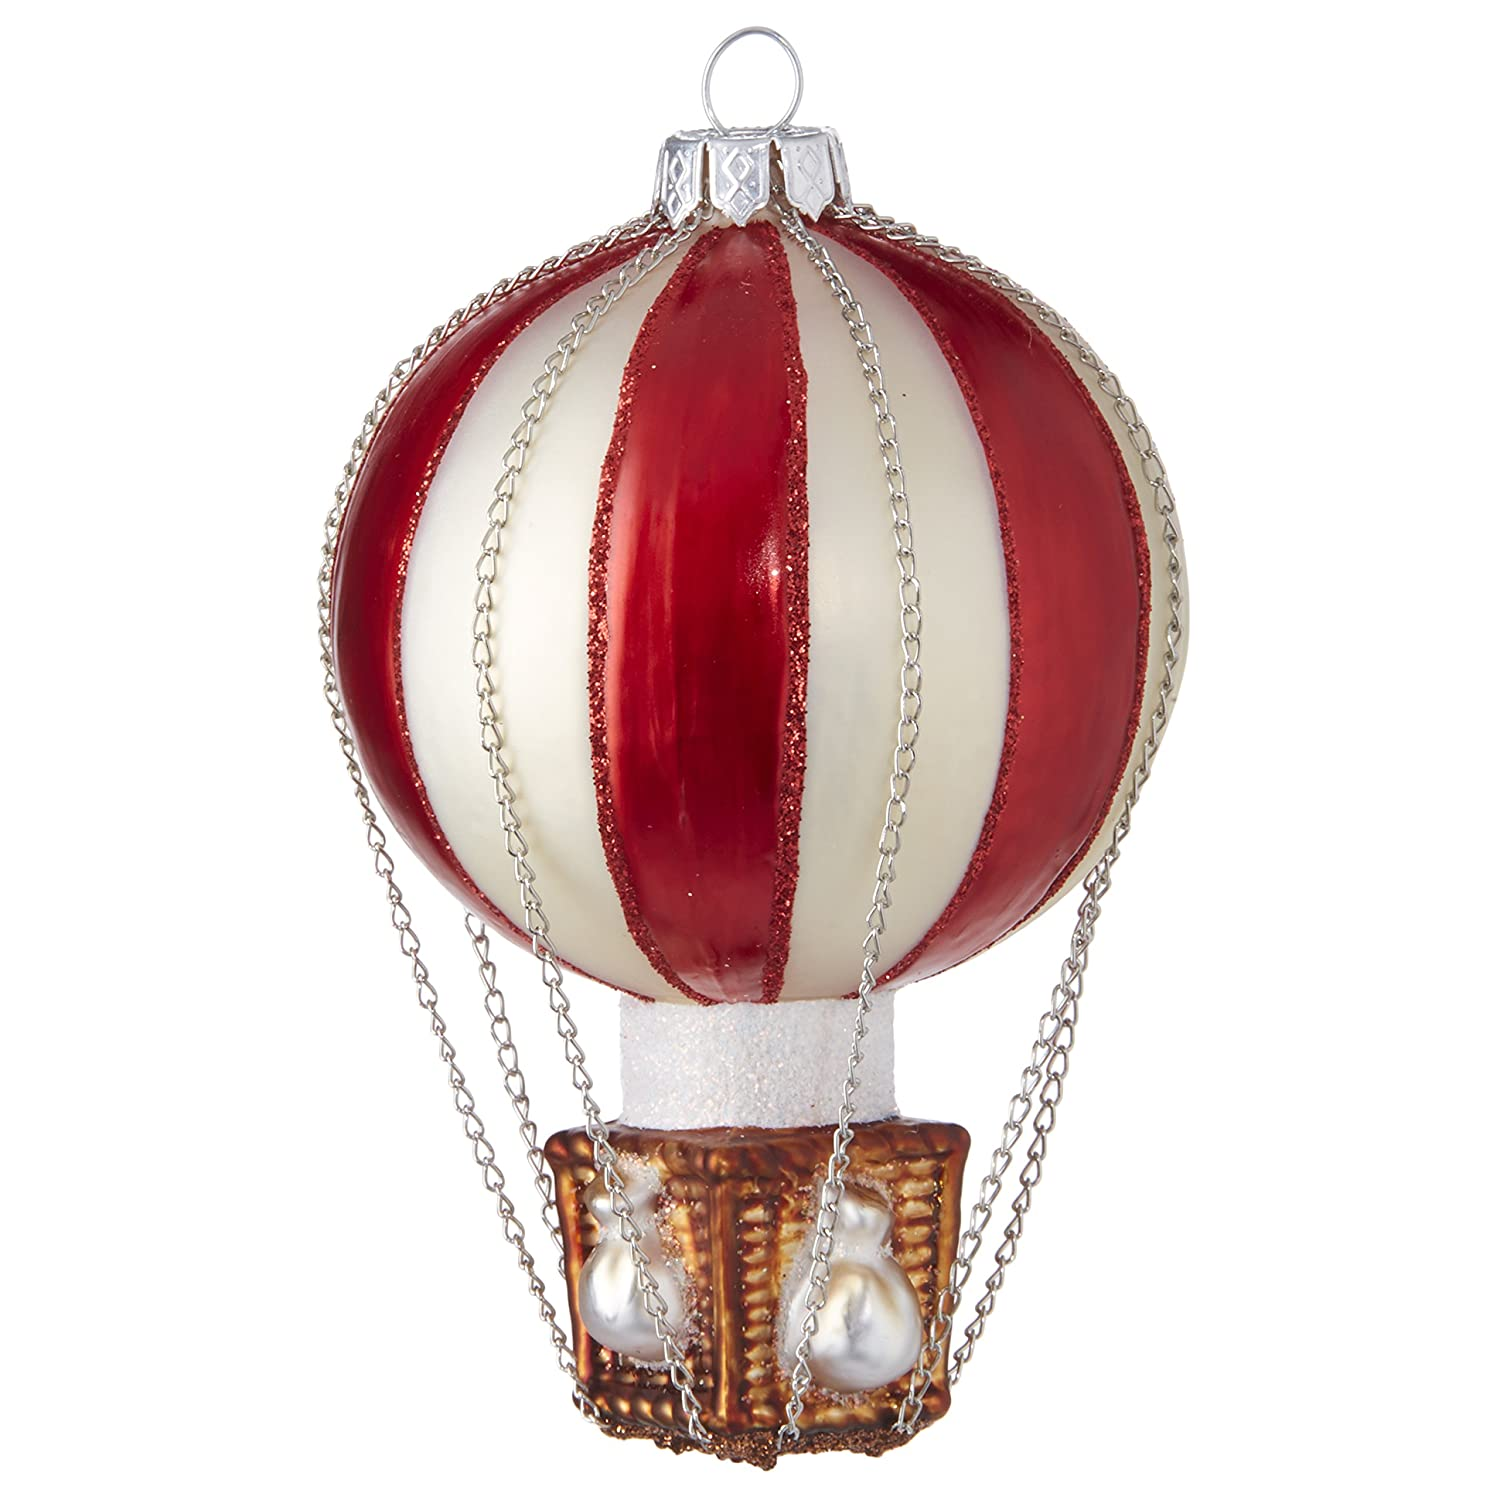 RAZ Imports Red Hot Air Balloon Glass Ornament, 4